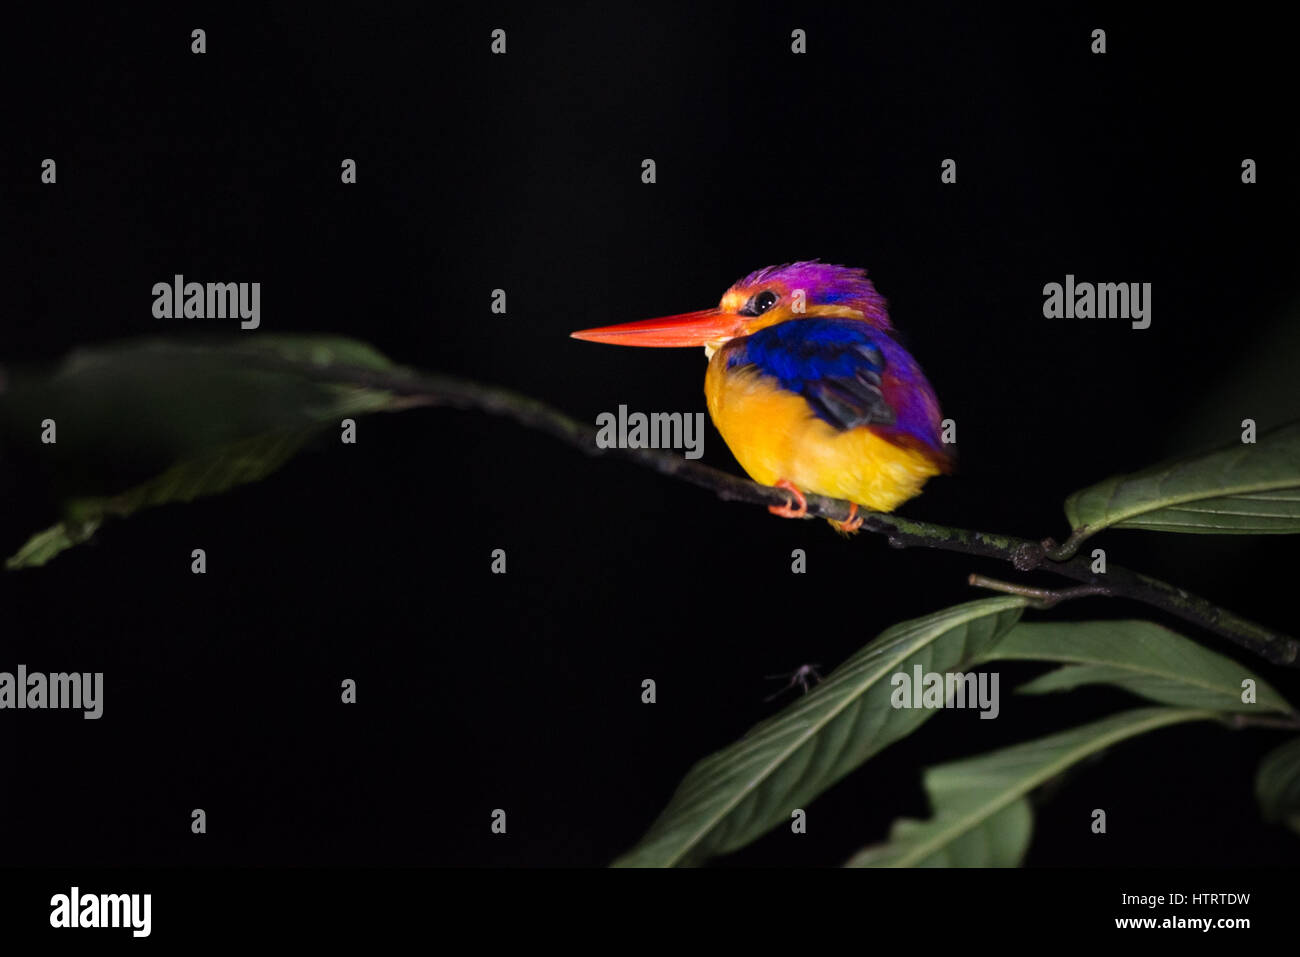 Oriental dwarf kingfisher (Ceyx erithaca) resting during nighttime in tropical lowland forest of Borneo. © Reynold Stock Photo